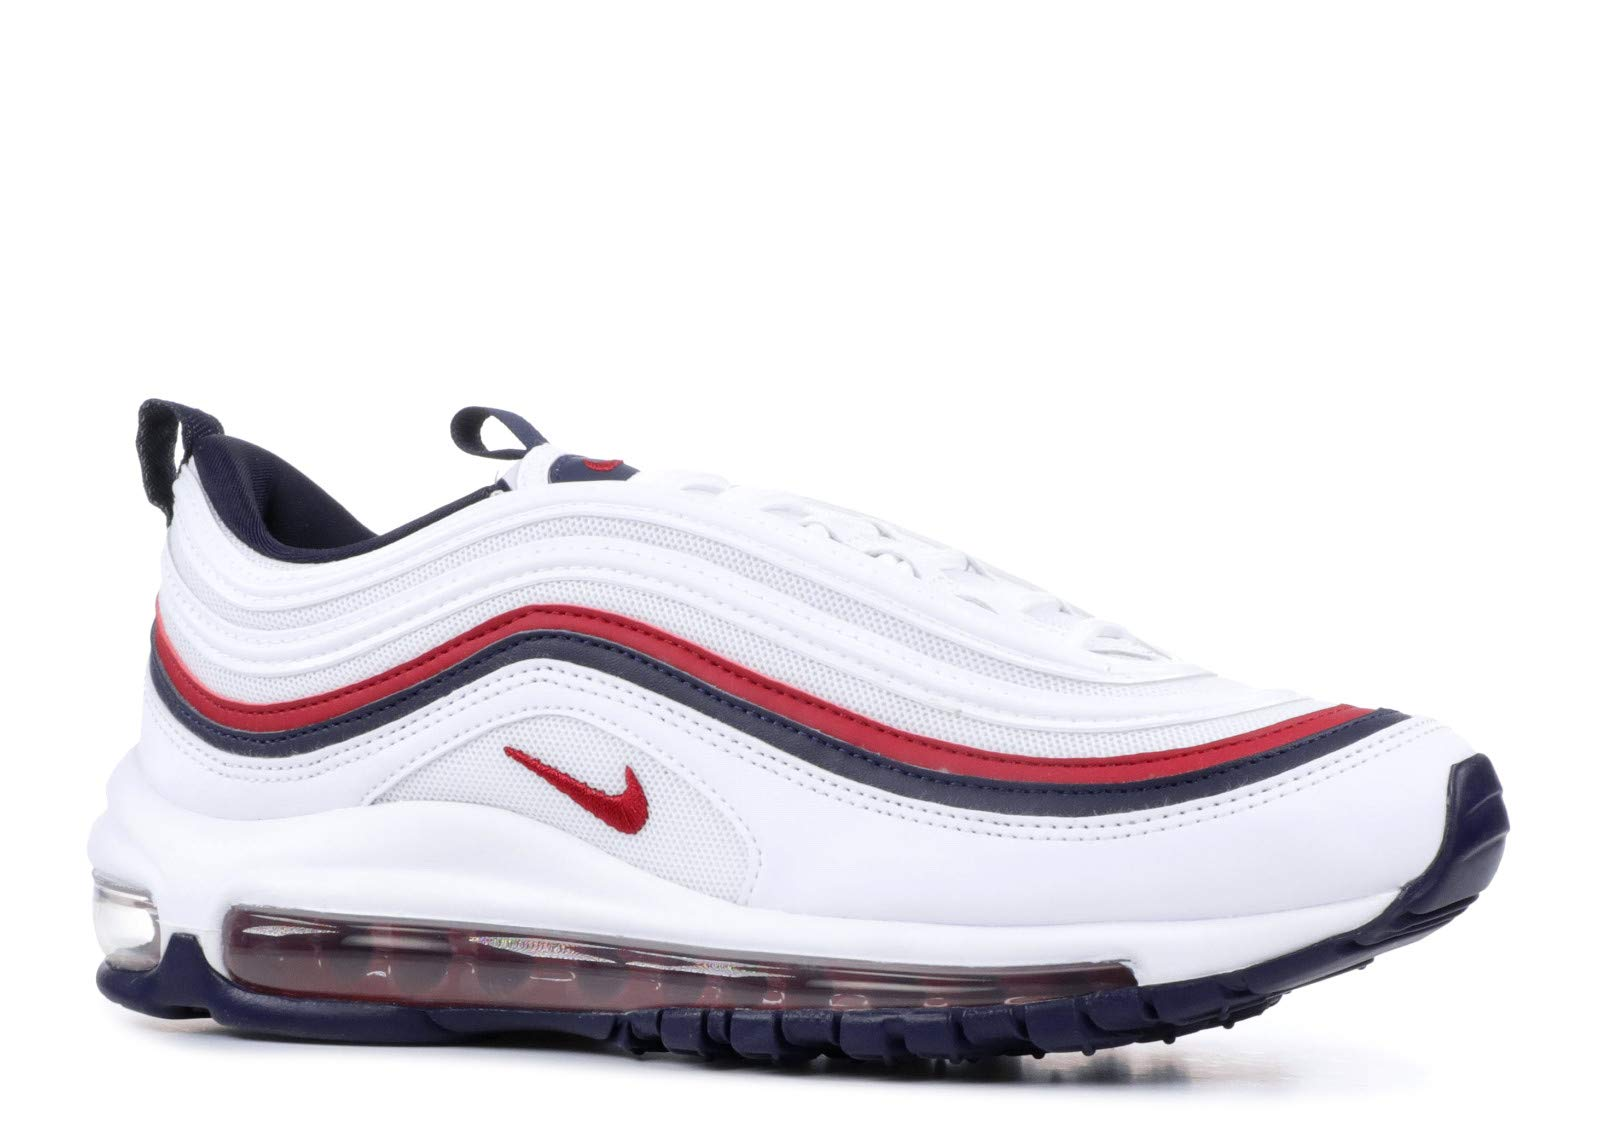 61V%2Bb9WOO7L - Nike Women's W Air Max 97 Competition Running Shoes